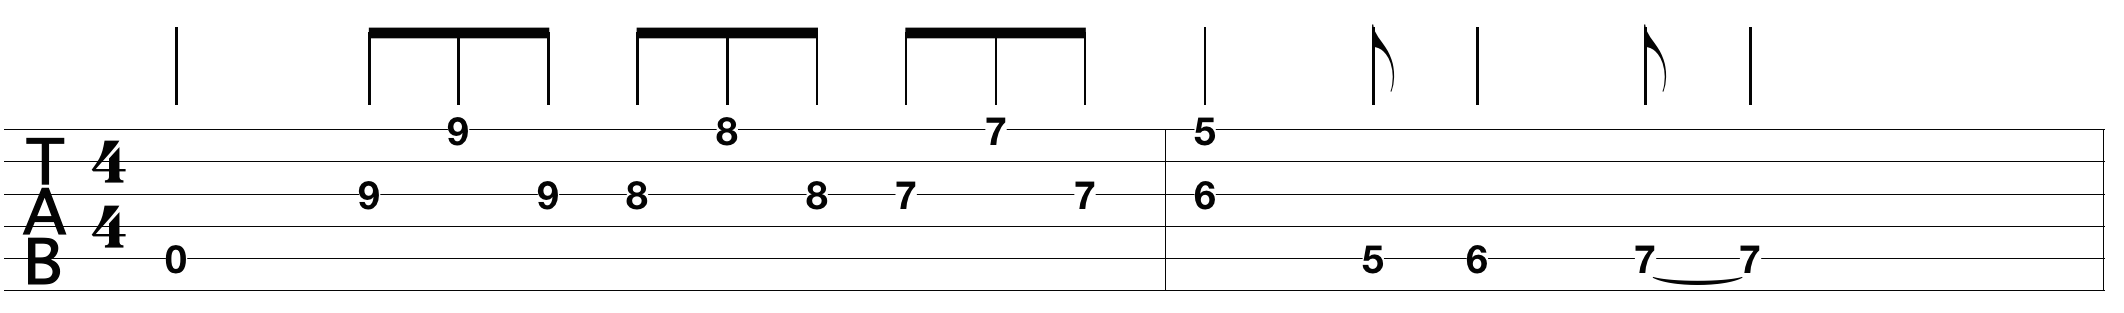 beginner-blues-guitar-lessons_1.png